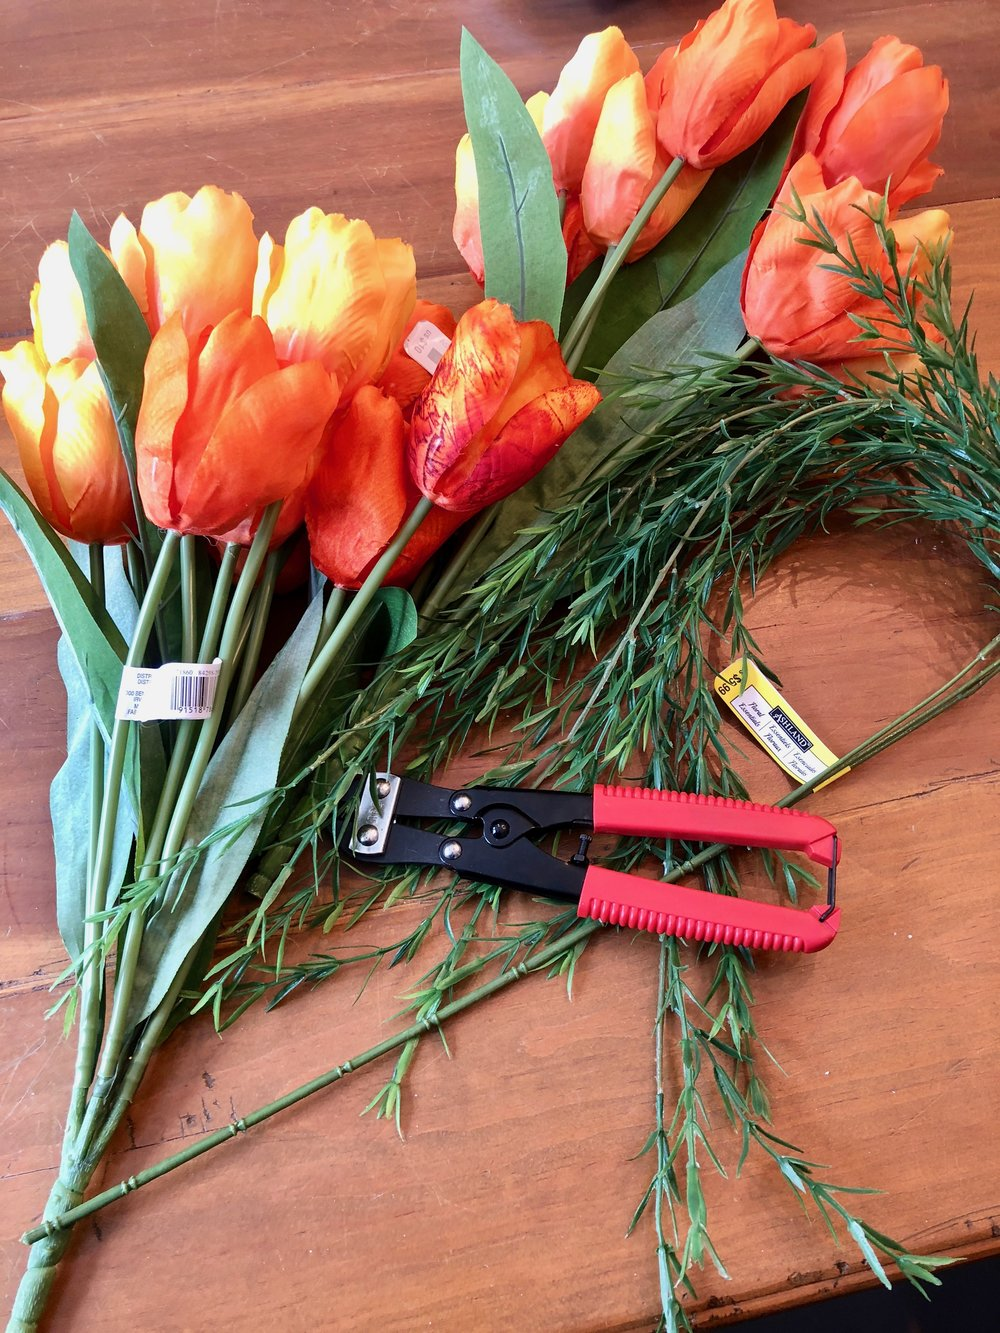 how to make a carrot out of tulips